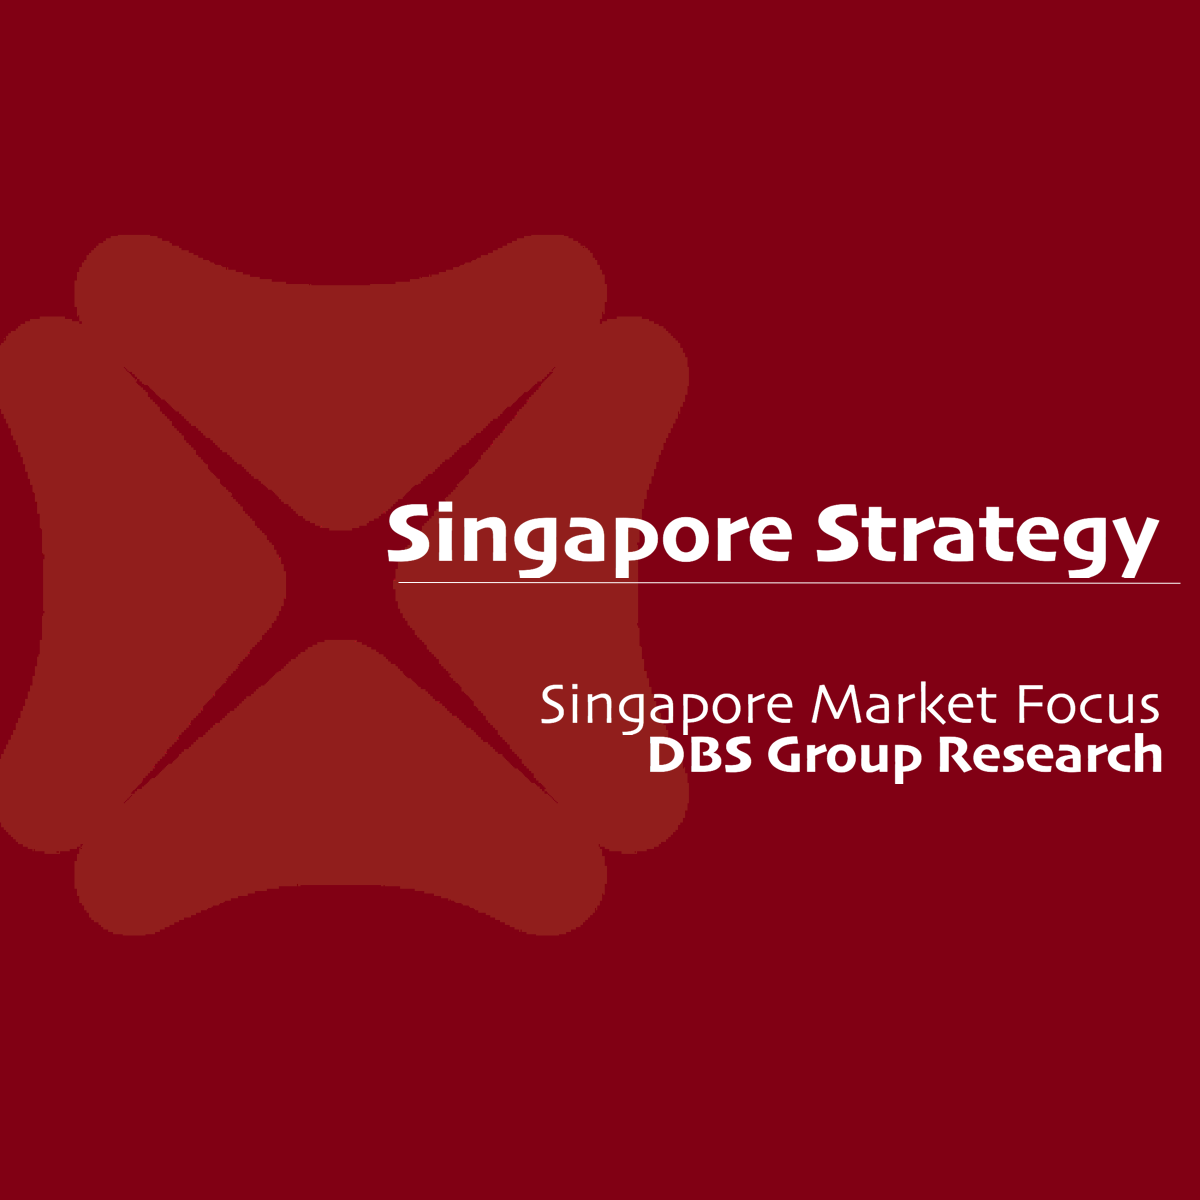 Singapore Market Focus - DBS Vickers 2017-07-10: USD Rebound And Choppy Quarter For Equities